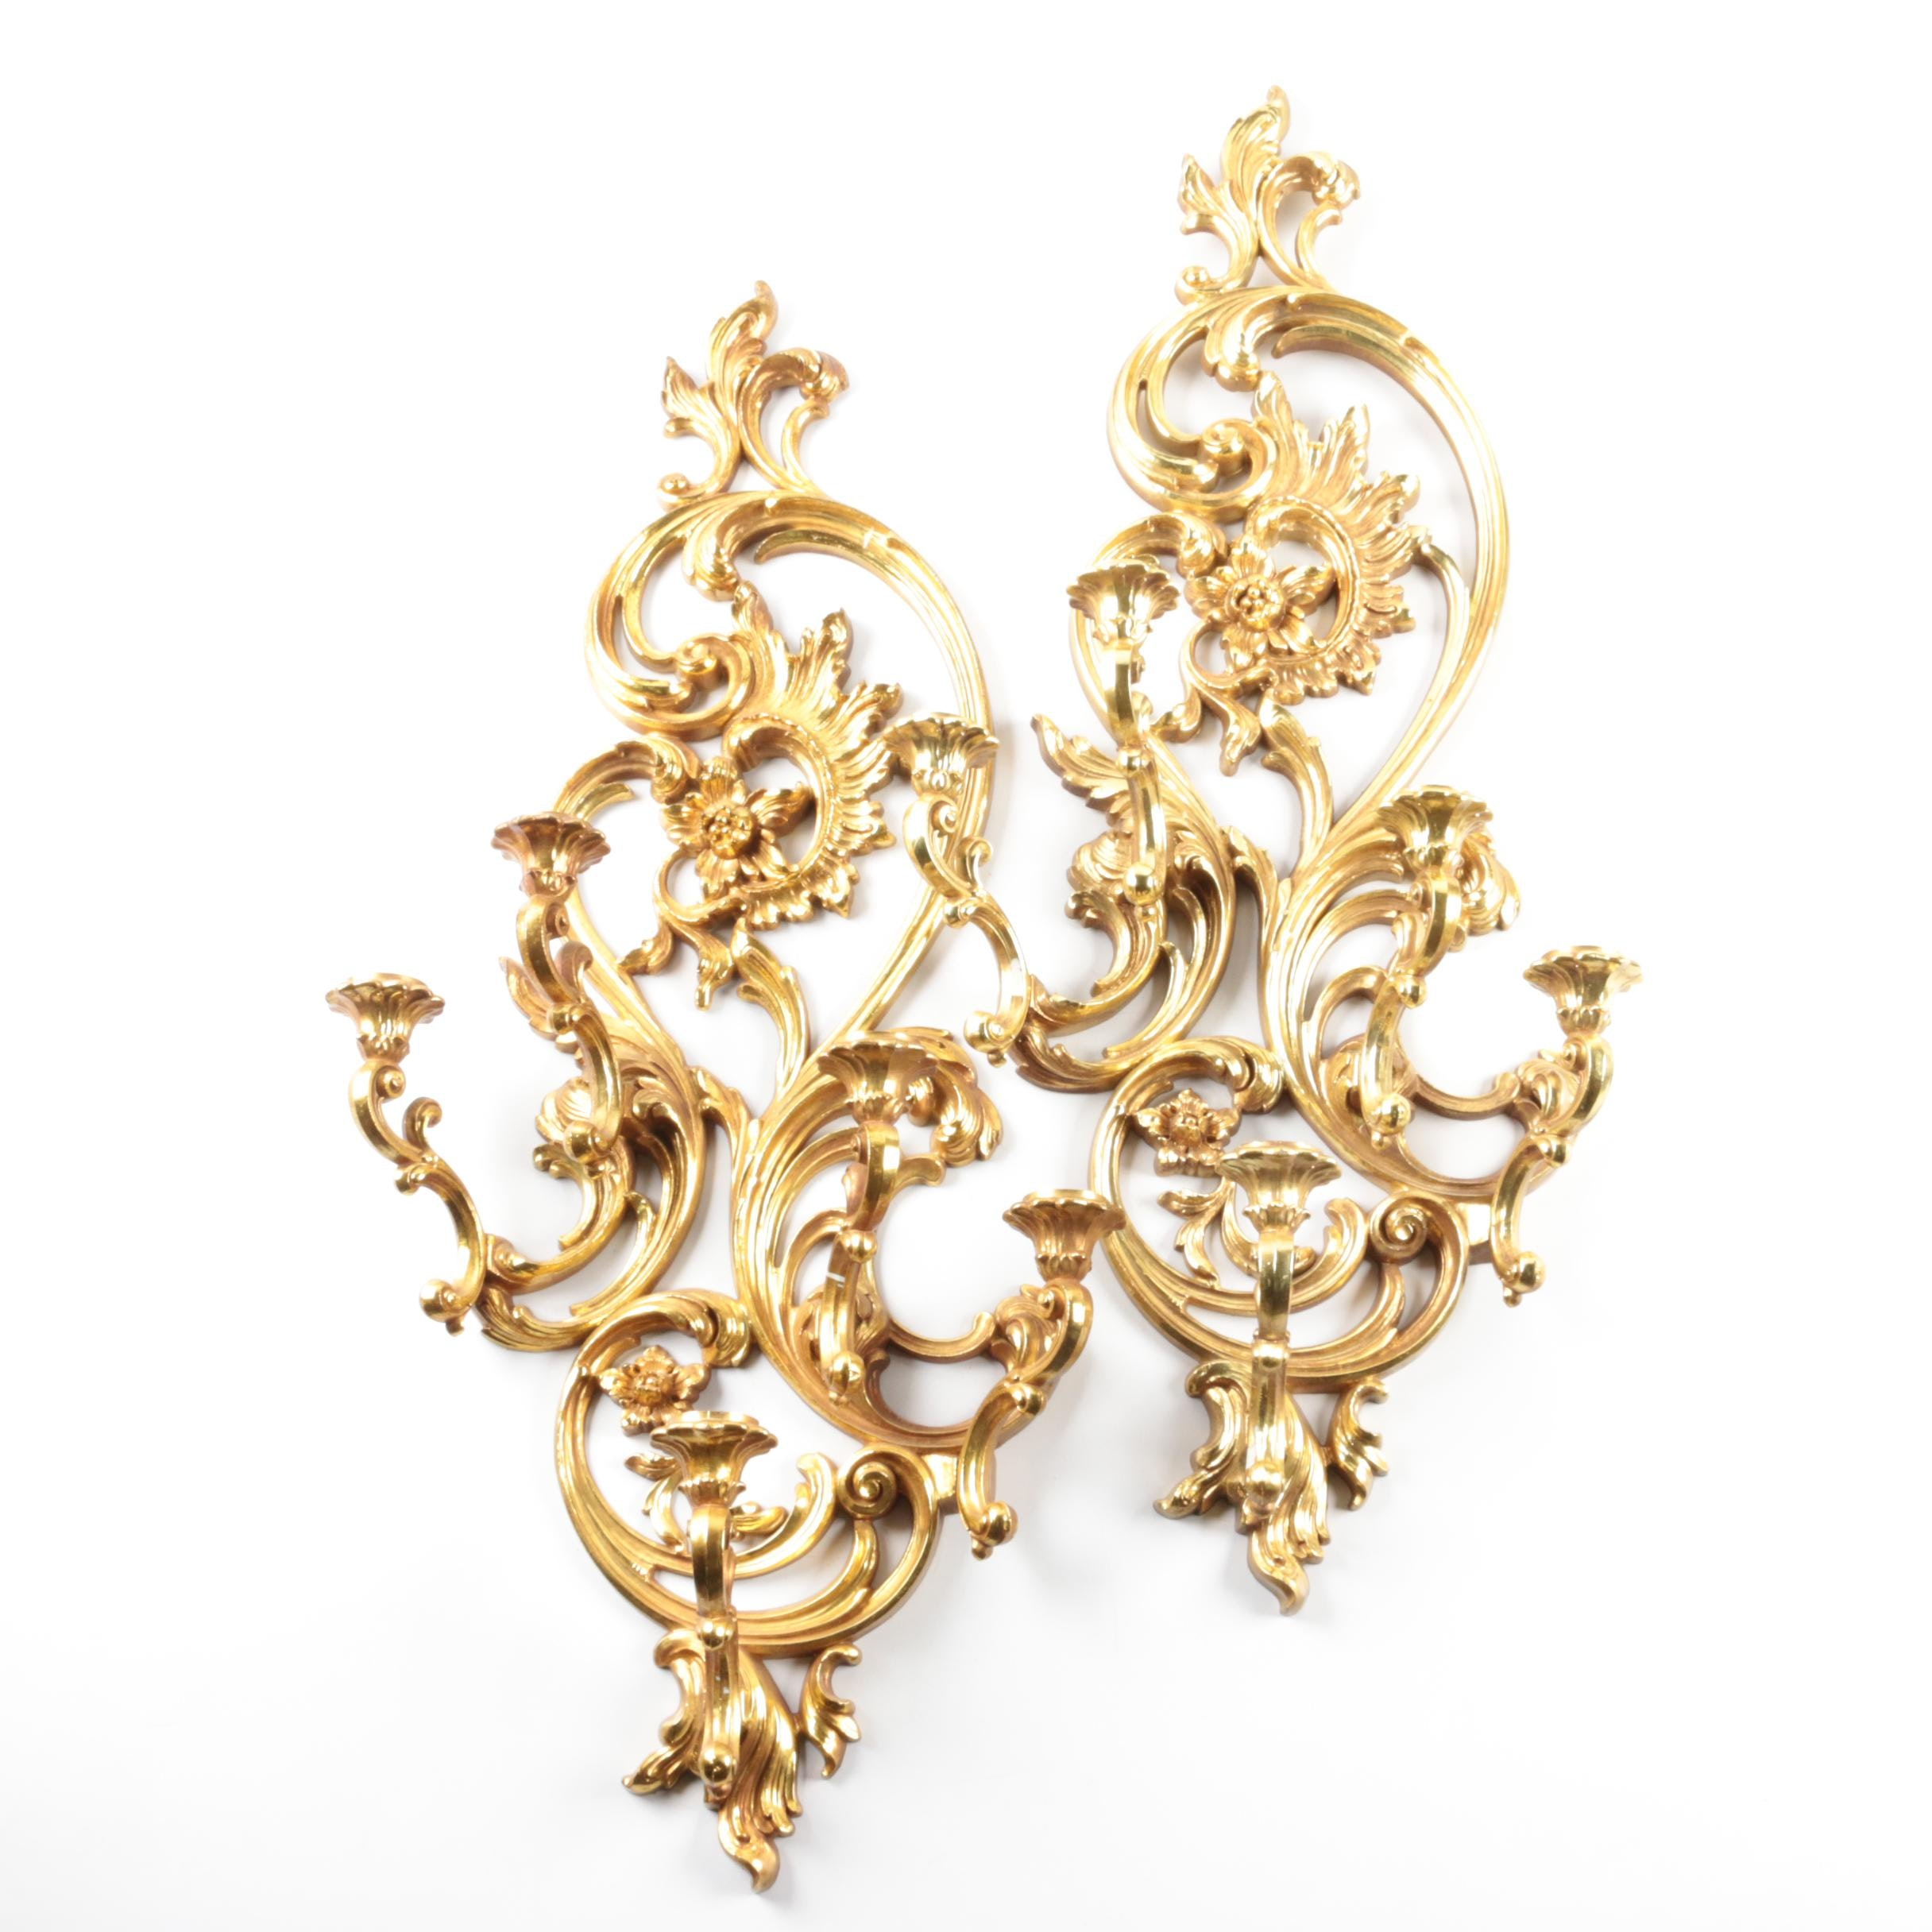 Vintage Rococo Style Candle Sconces by Syroco Inc.